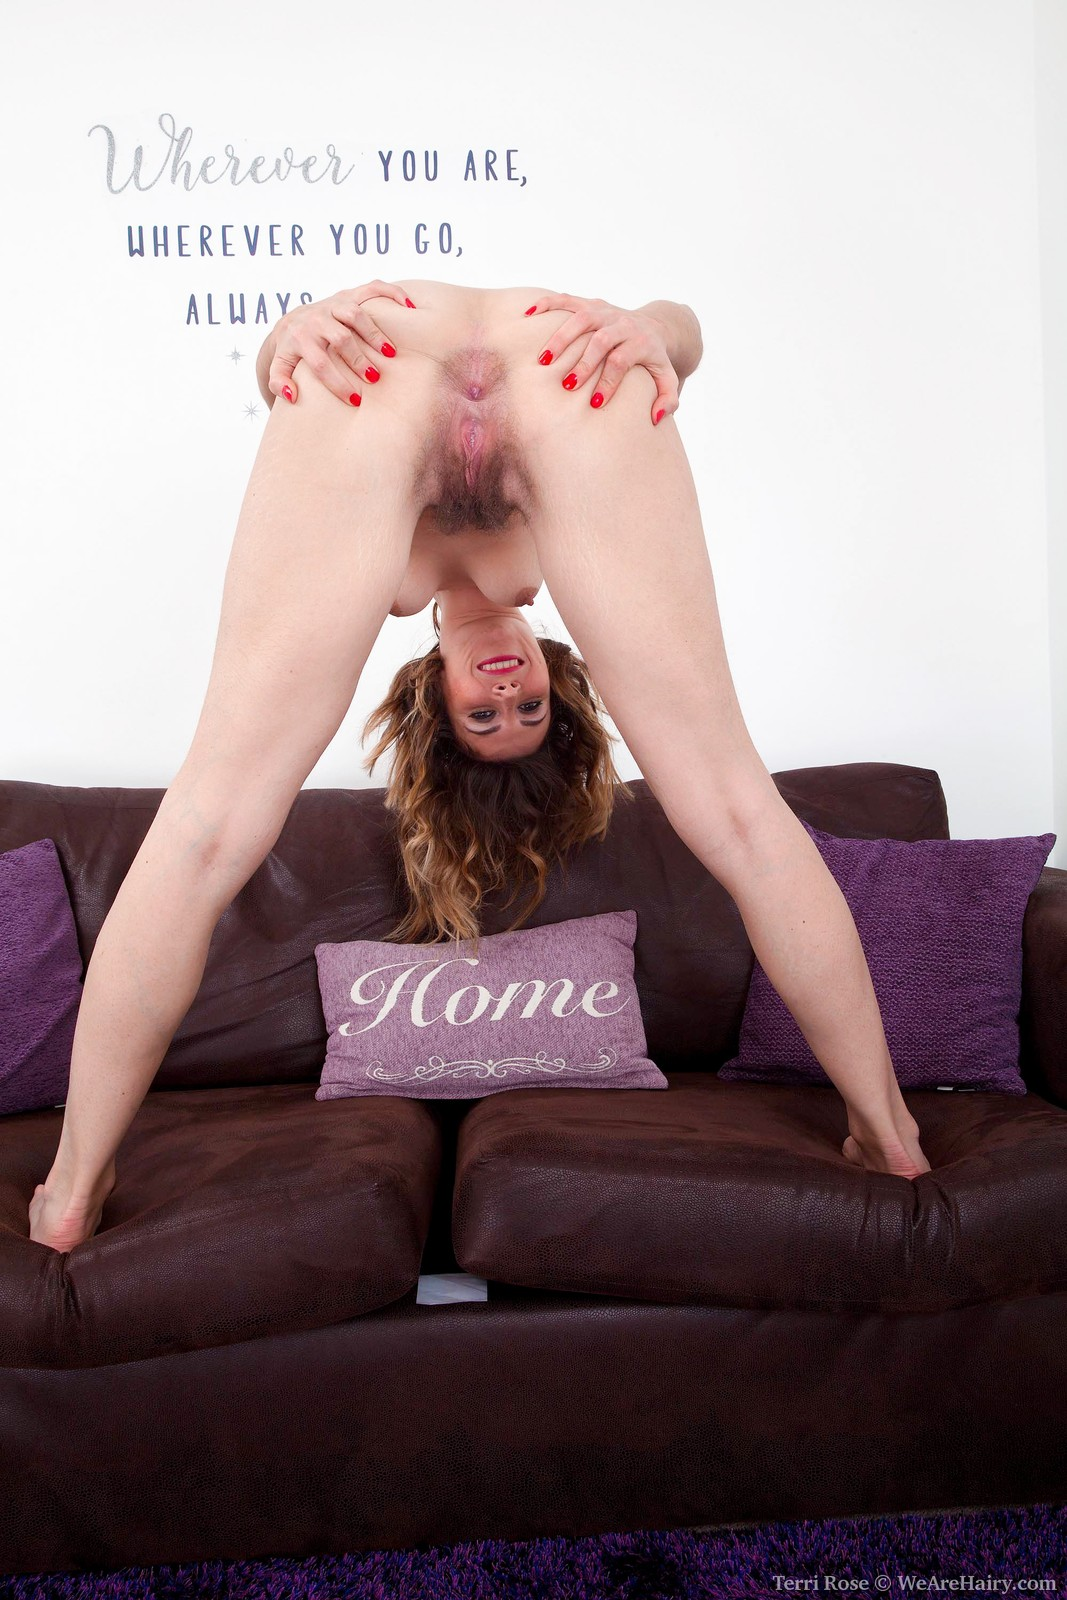 terri-rose-is-in-her-white-dress-on-her-purple-sofa-and-showing-off-her-very-hairy-pits.-she-strips-naked-and-shows-us-her-hairy-pussy-too.-she-bends-over-spreads-wide-and-shows-all-of-it-off-for-us.15.jpg